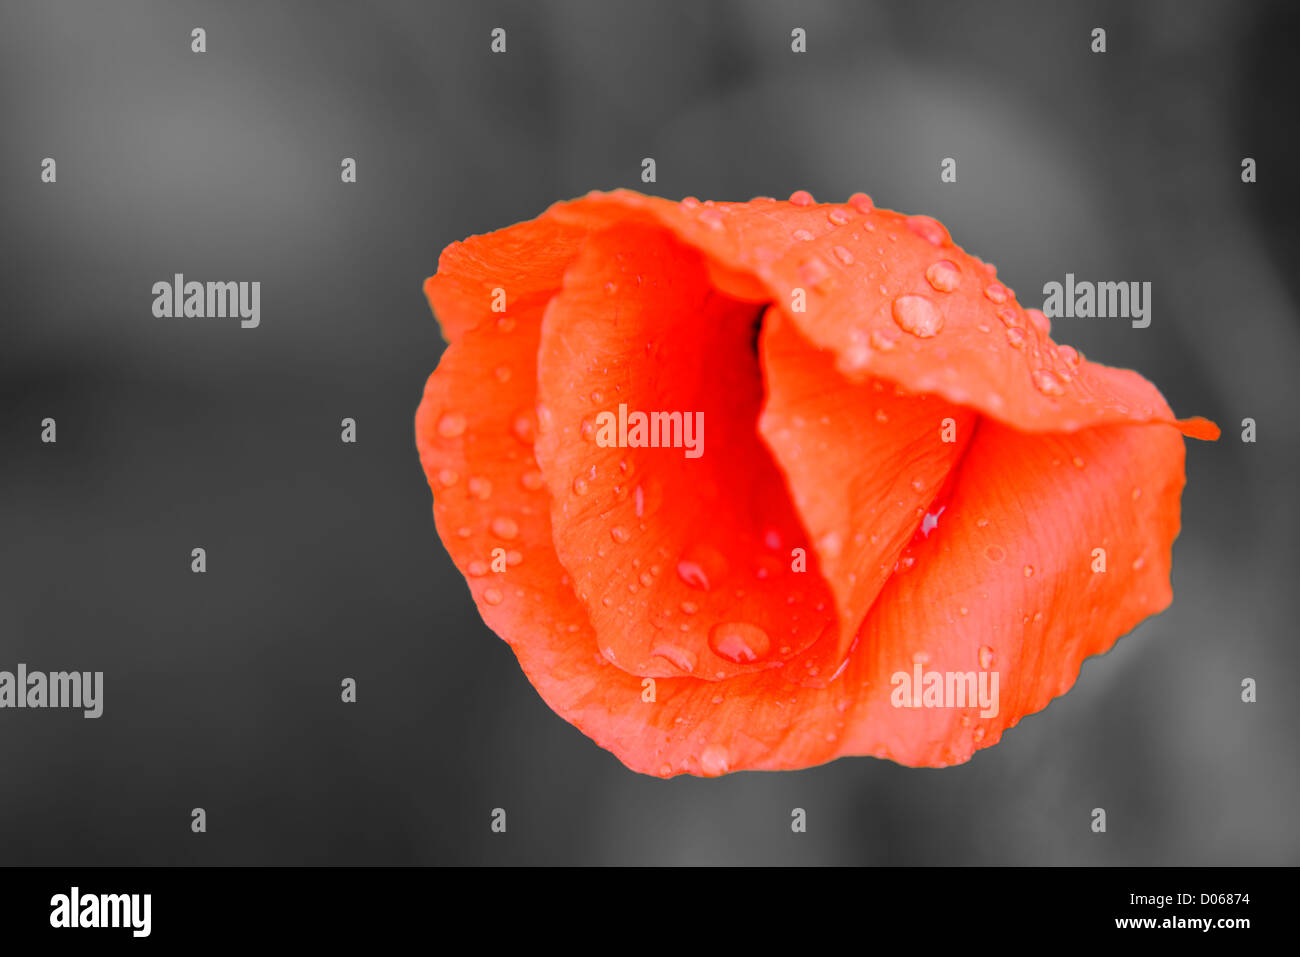 a red poppy on grey background - Stock Image